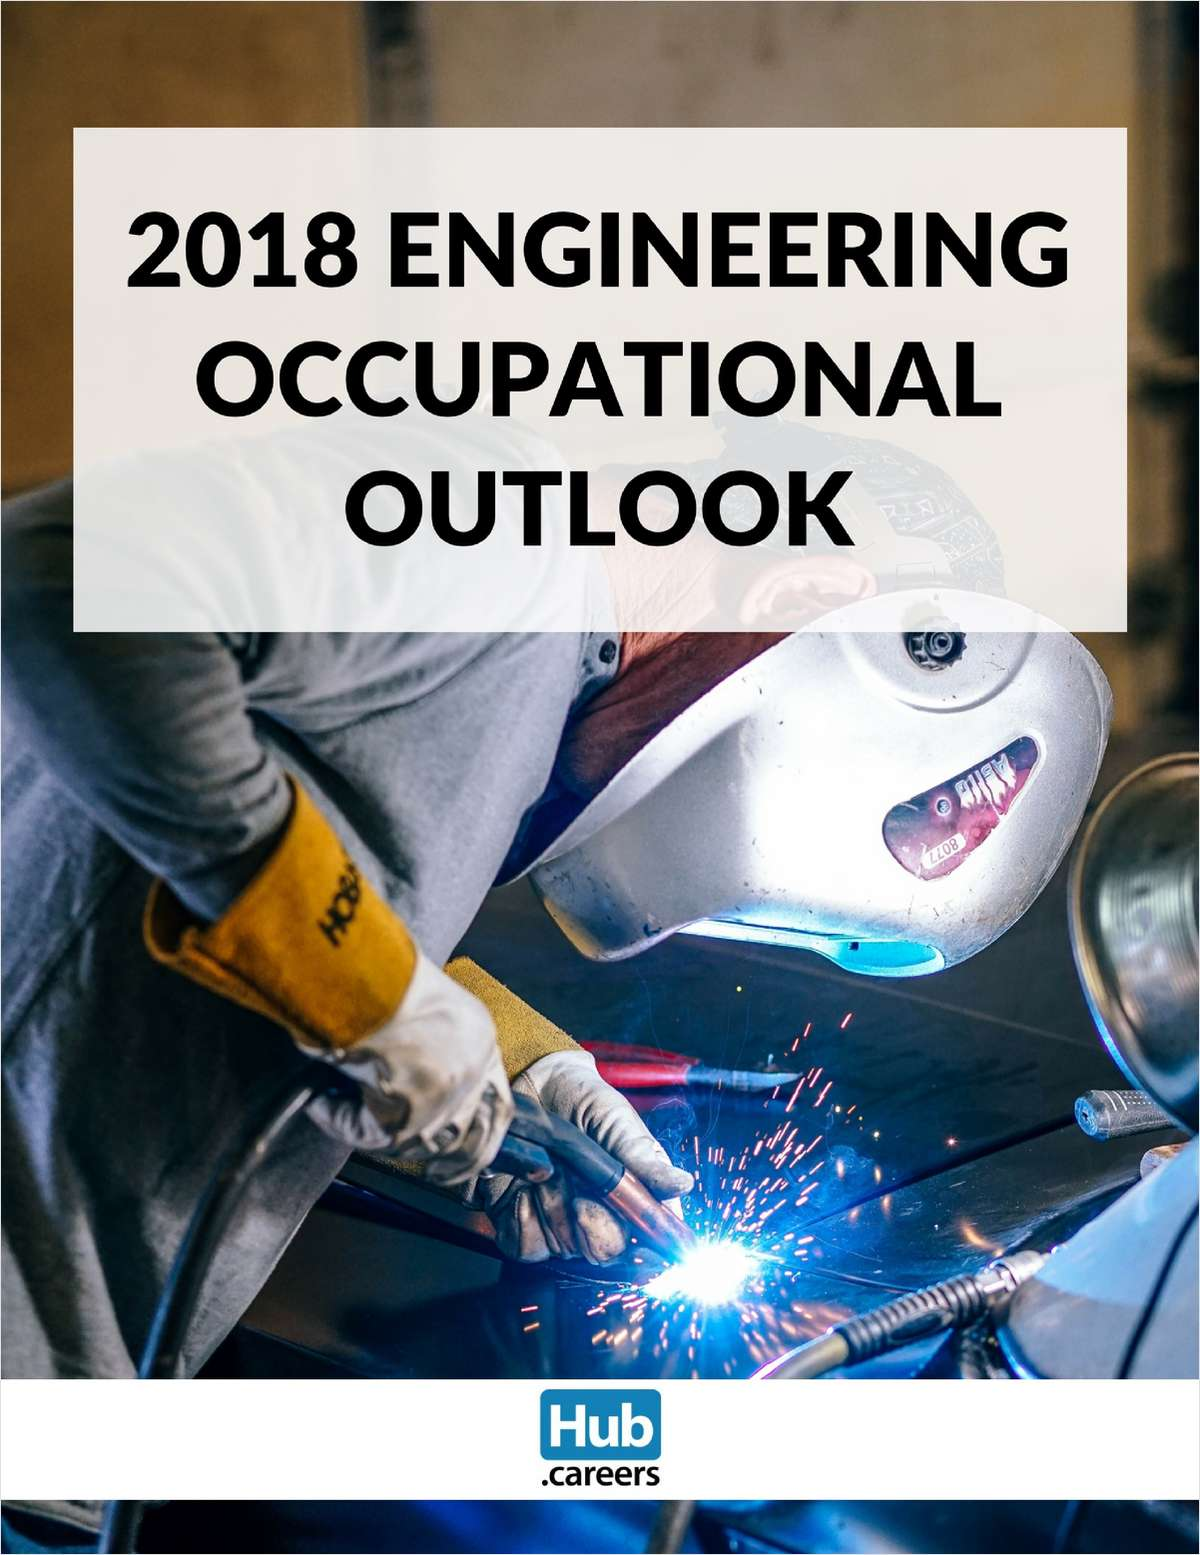 2018 Engineering Occupational Outlook